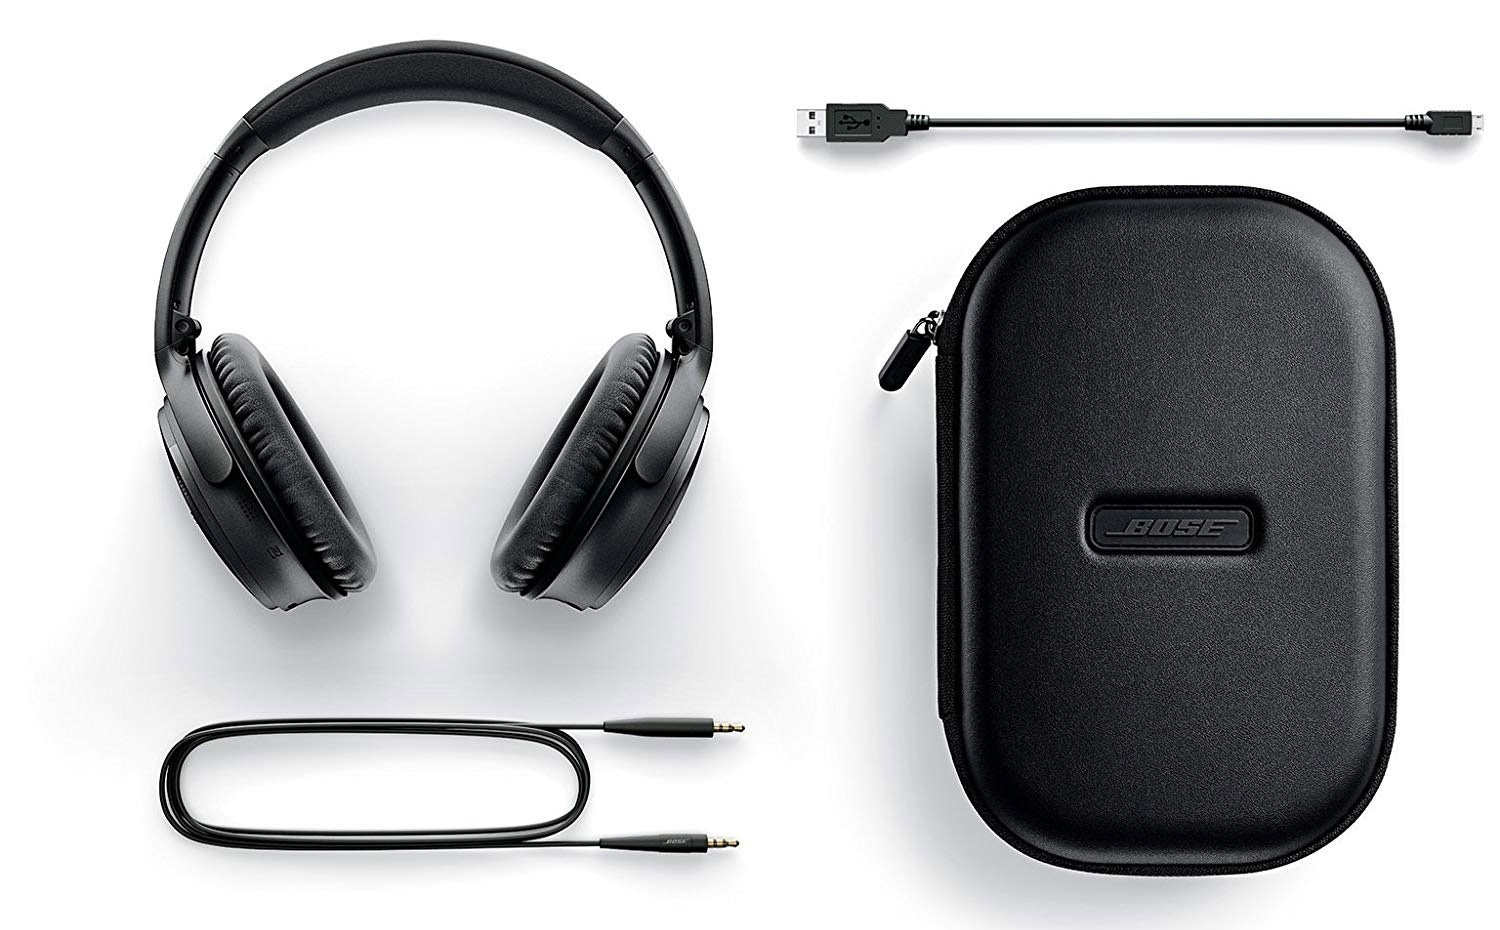 db077b5949f If you're looking for another option, make sure you check out our 5 Best  Noise Cancelling Headphones list.